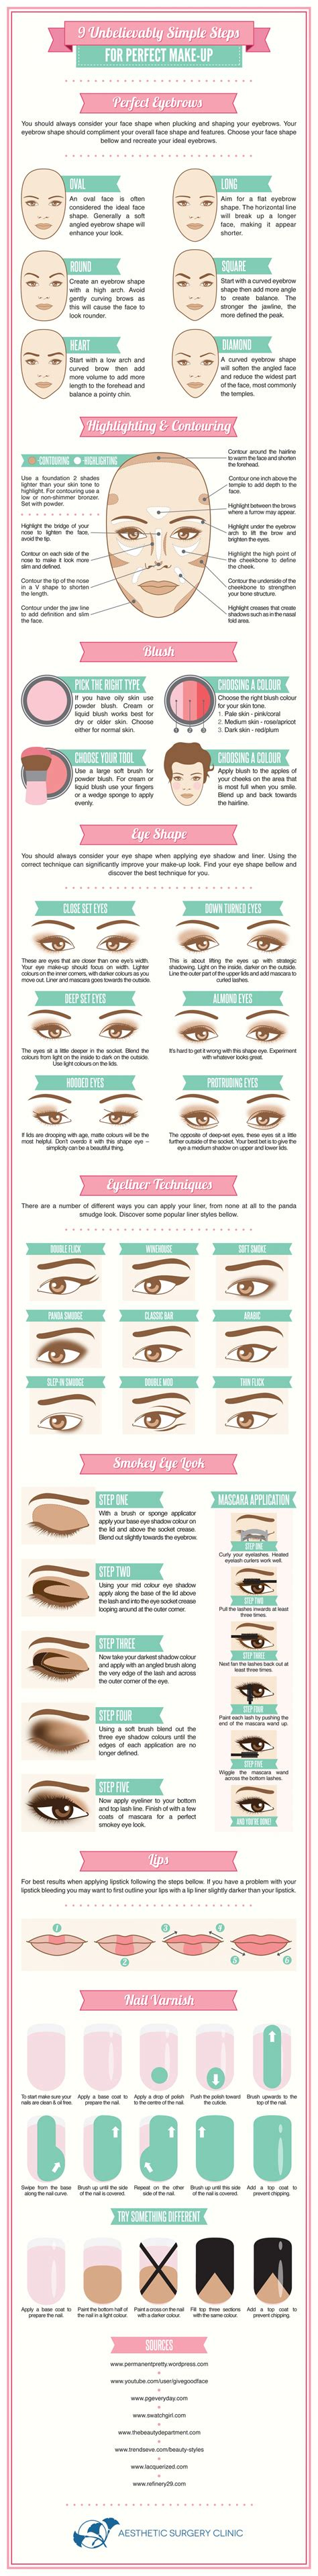 9 Unbelievably Simple Steps For Perfect Makeup Visually